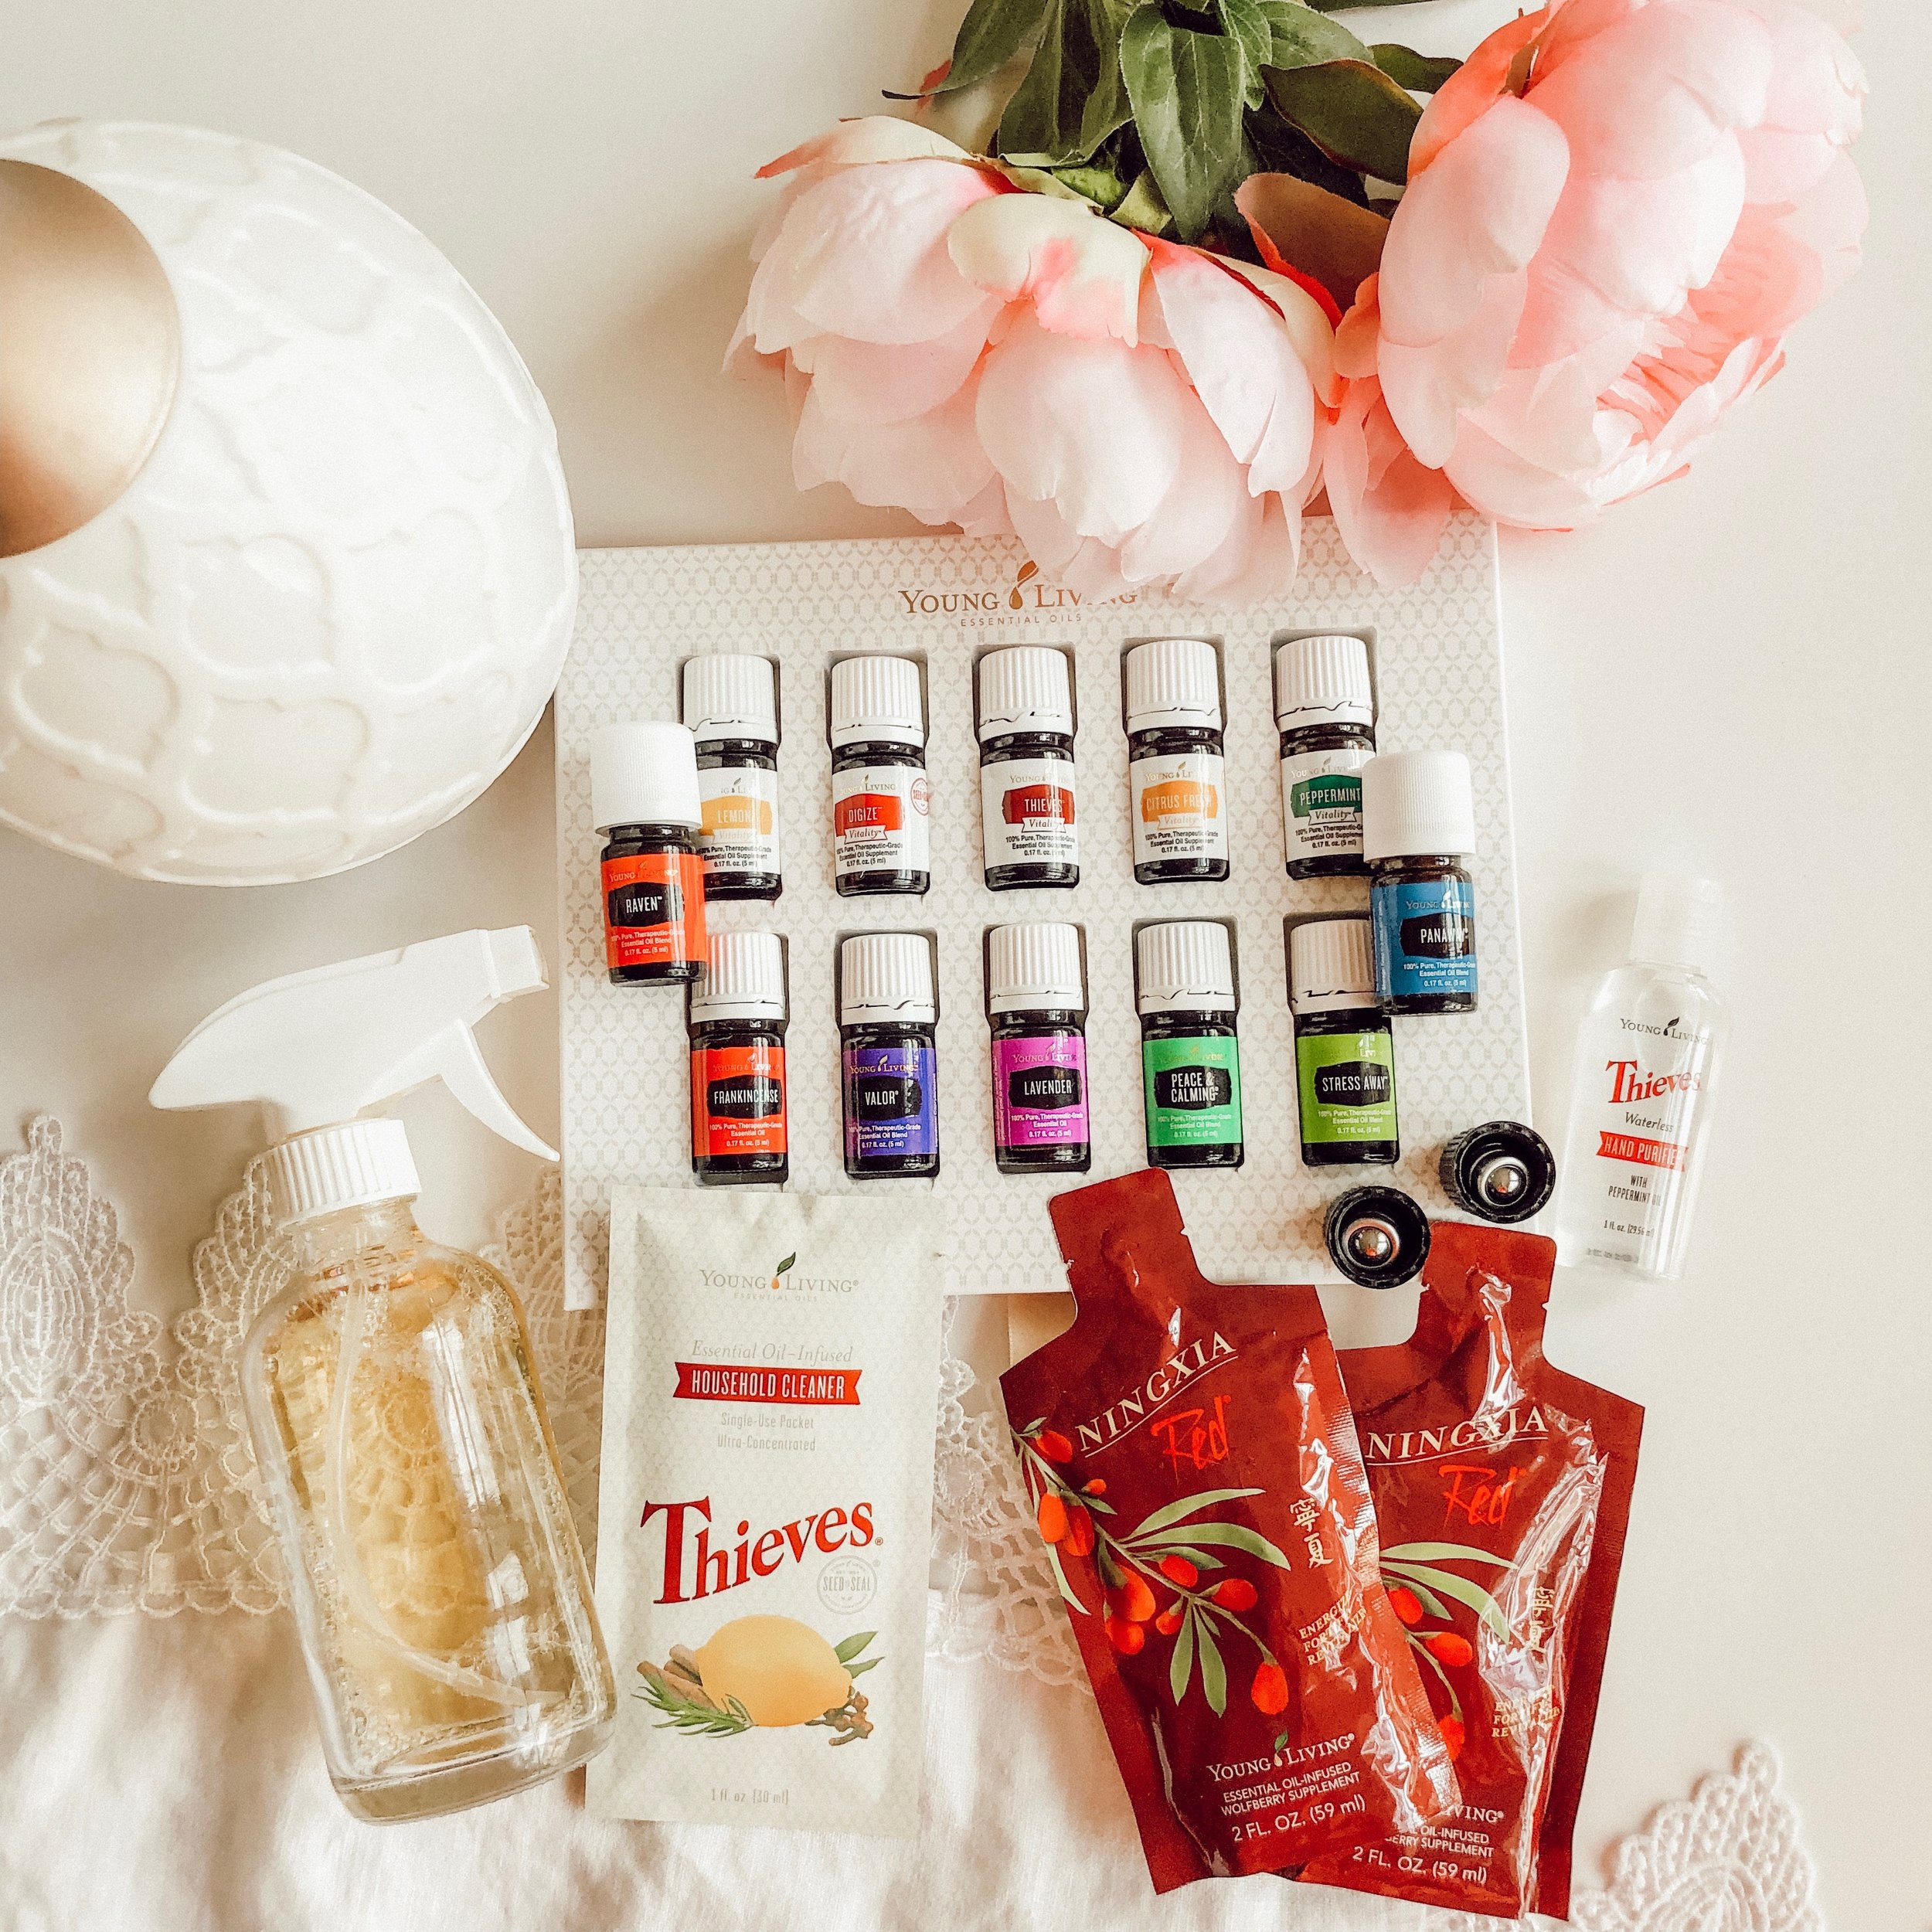 Receive $25 off! - This beautiful kit is $165, but I'm offering you $25 back when you join! It is perfect for getting started! When you join, I'll add you to our exclusive community online where you'll receive support, education, and so much more! I'll also send you happy mail with a beautiful guide on all things natural wellness and essential oils, the safety, how-to's, recipes for diffusing and wellness, and so much more!